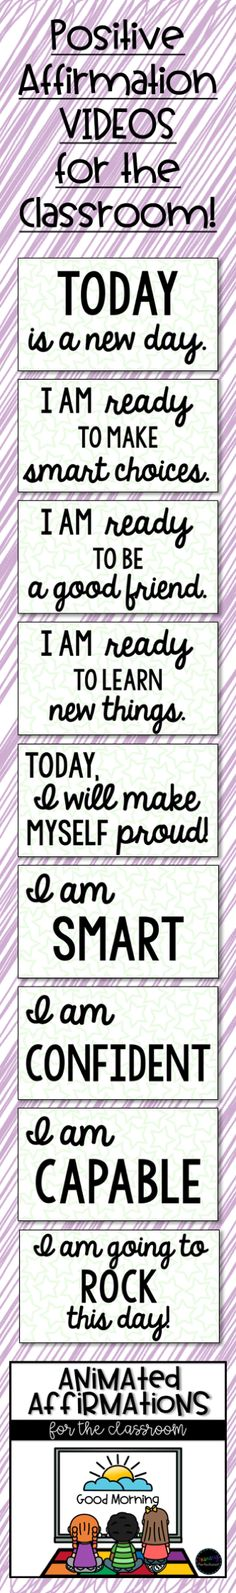 Animated Affirmations - positive thoughts for your classroom set to videos that you can project on your board or put on student devices!